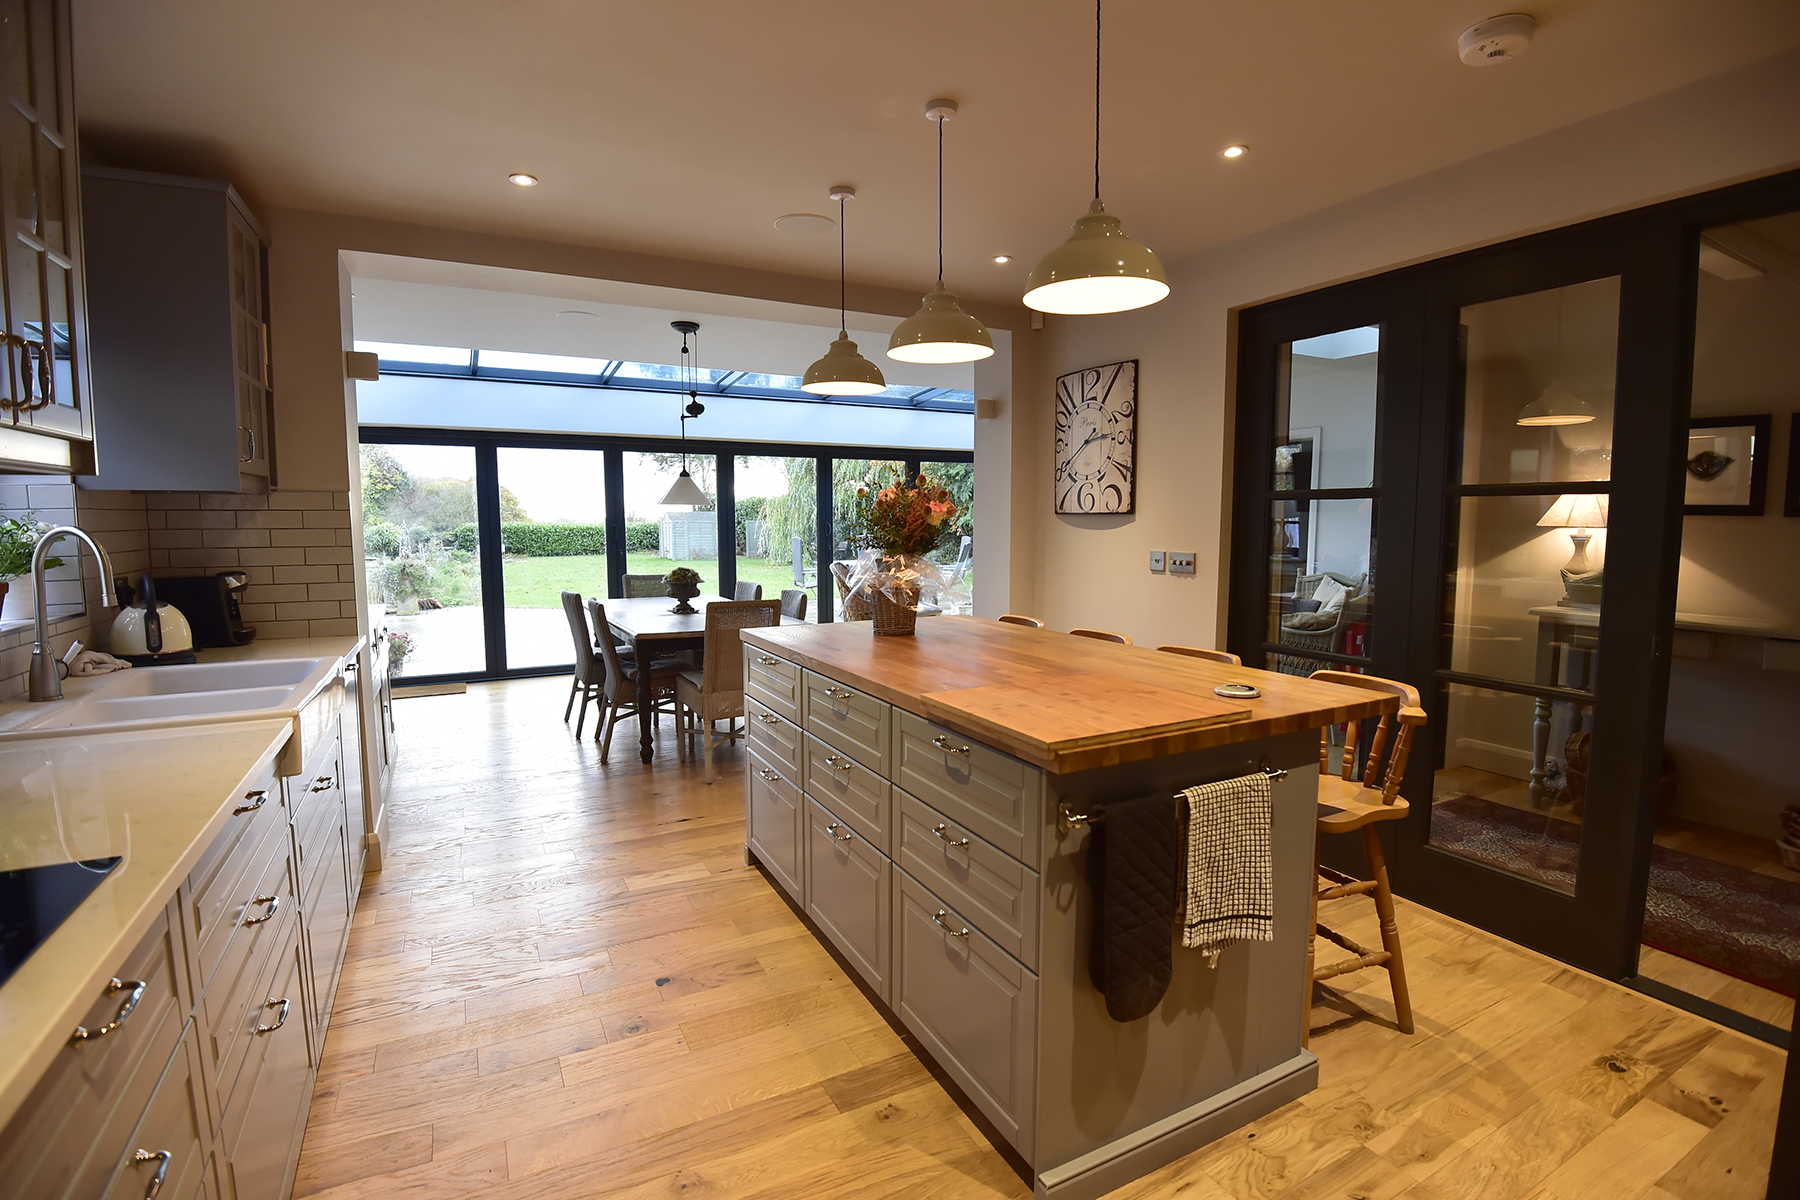 Kitchen Design Sarah Maidment Interiors, interior designer in Berkhamsted, St. Albans, Hertfordshire